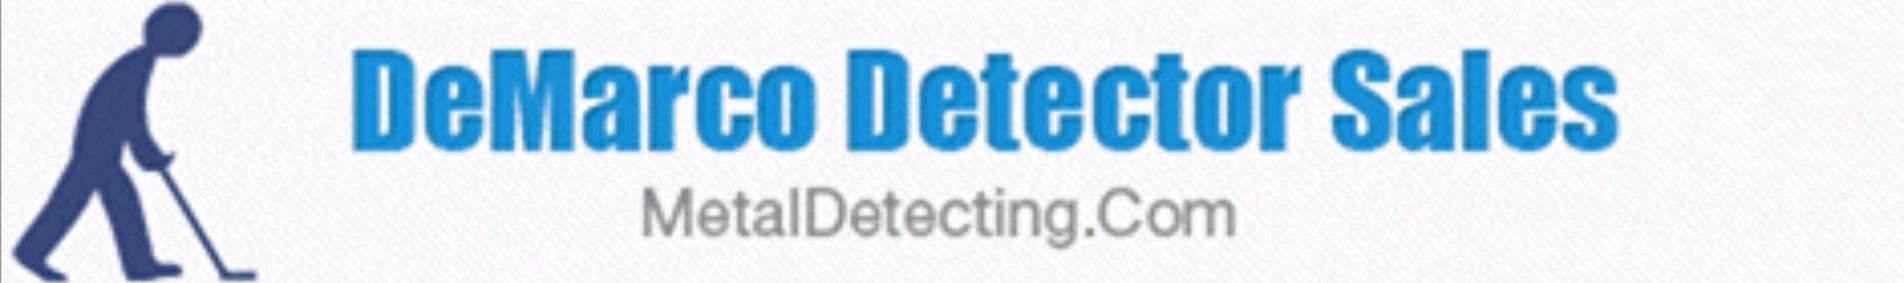 DeMarco Detector Sales - MetalDetecting.com